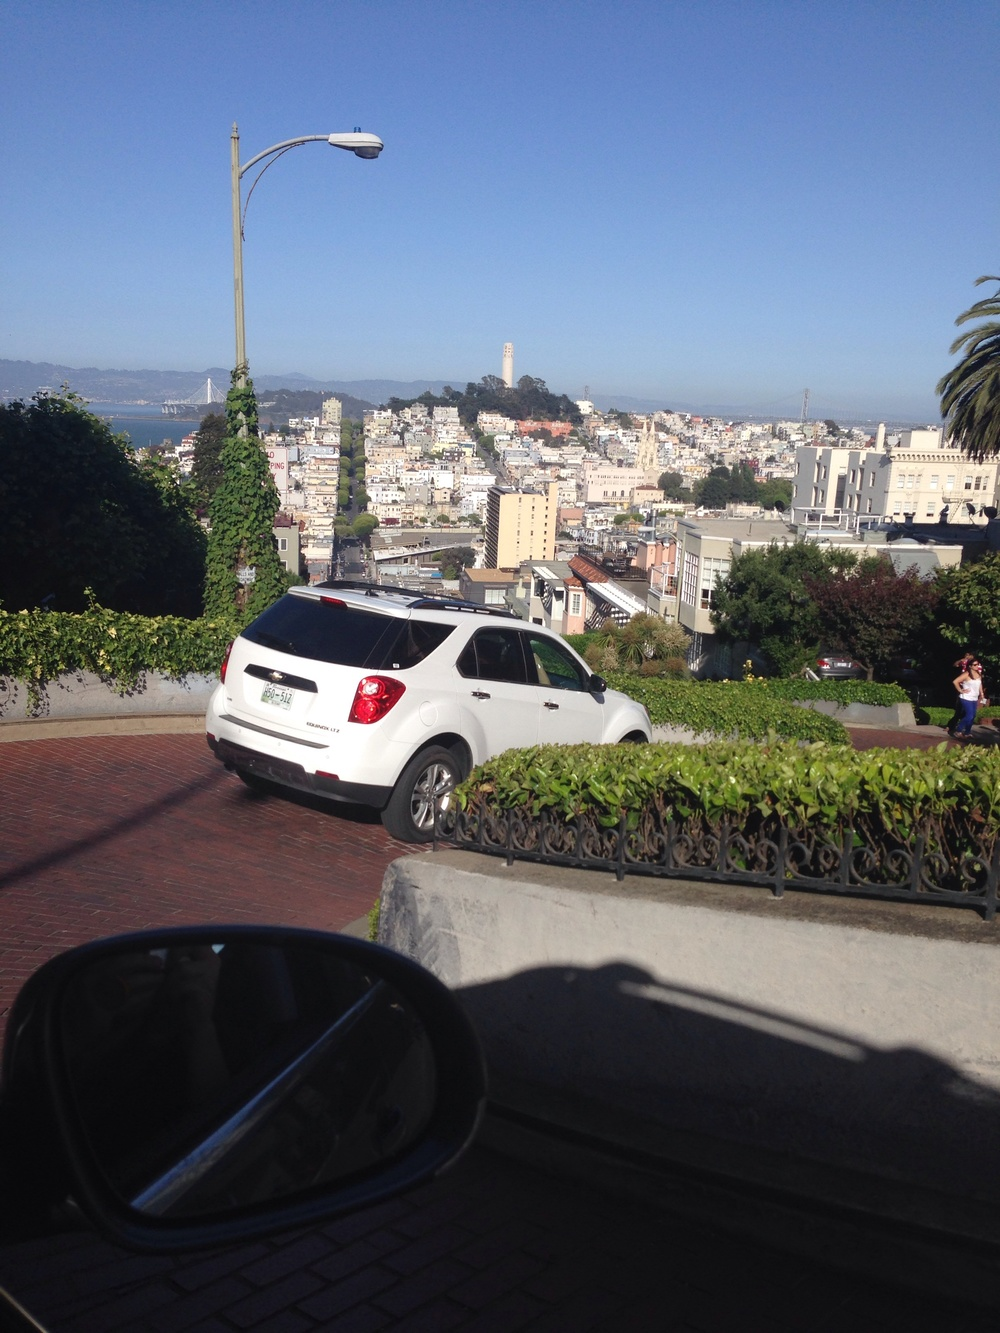 Lombard. I know it's ridiculous but it is a cool street! Swarming with tourists!